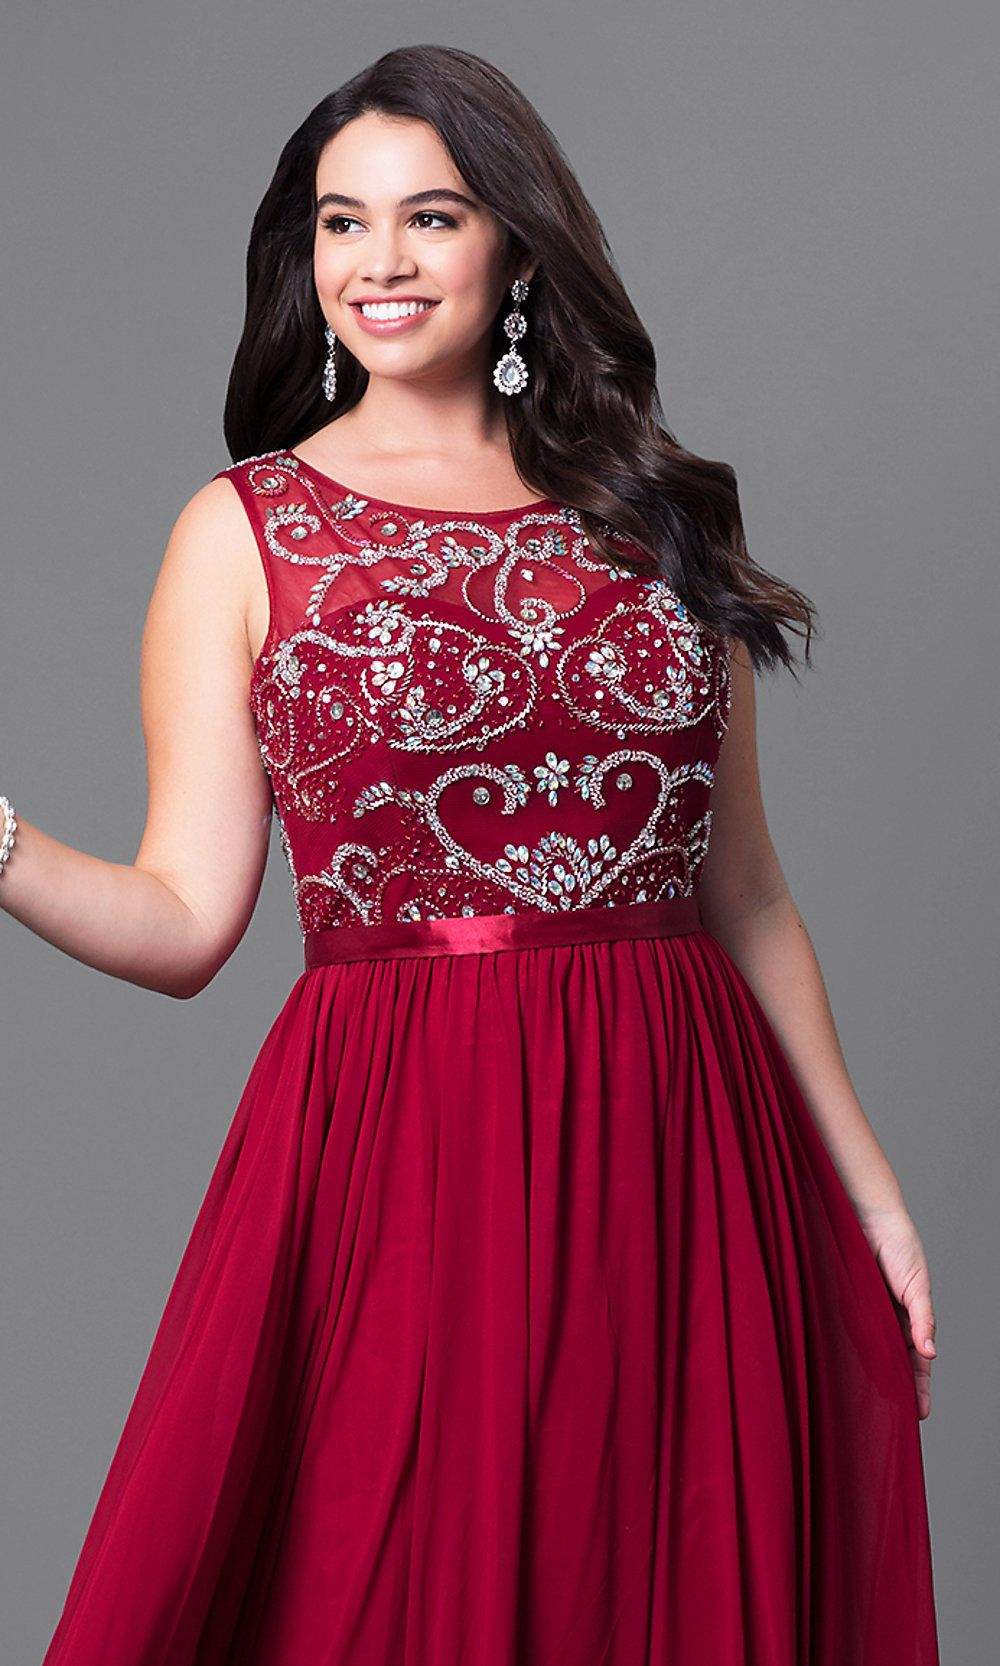 17eea777594e79 Jeweled Illusion Plus-Size Prom Dress - PromGirl. Beaded-Bodice ...